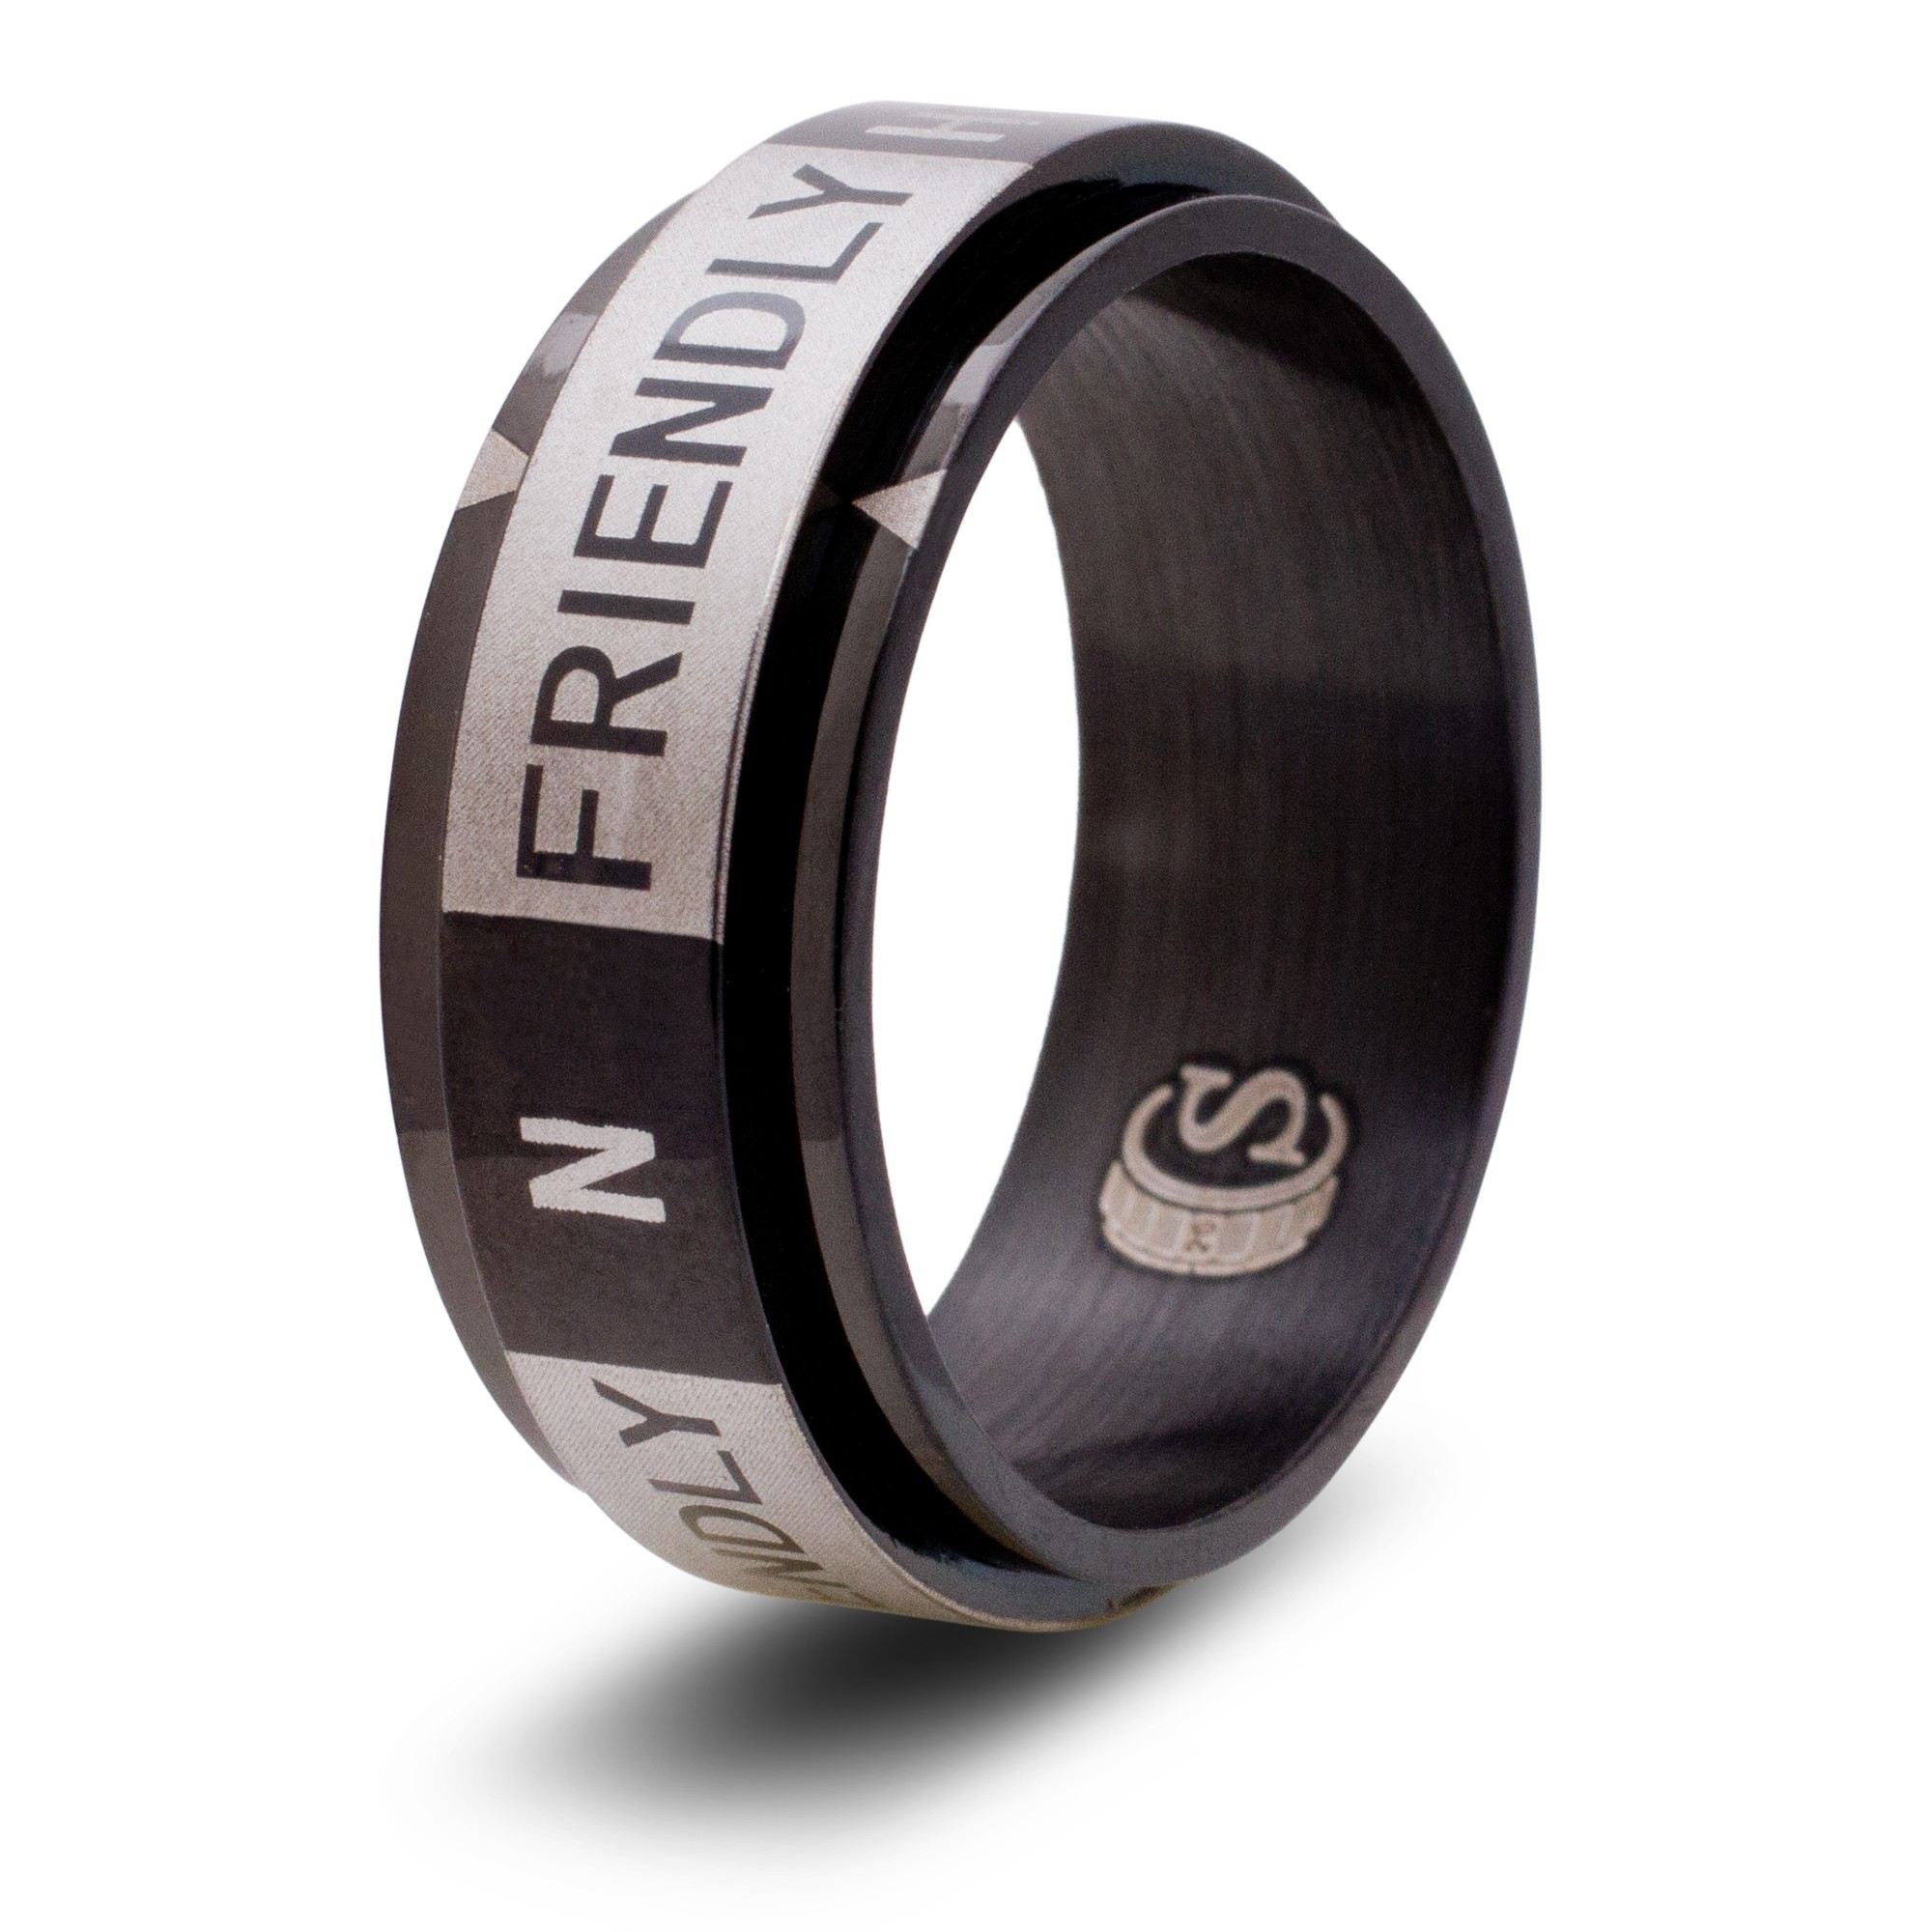 nerdy nerd luxury wedding rings